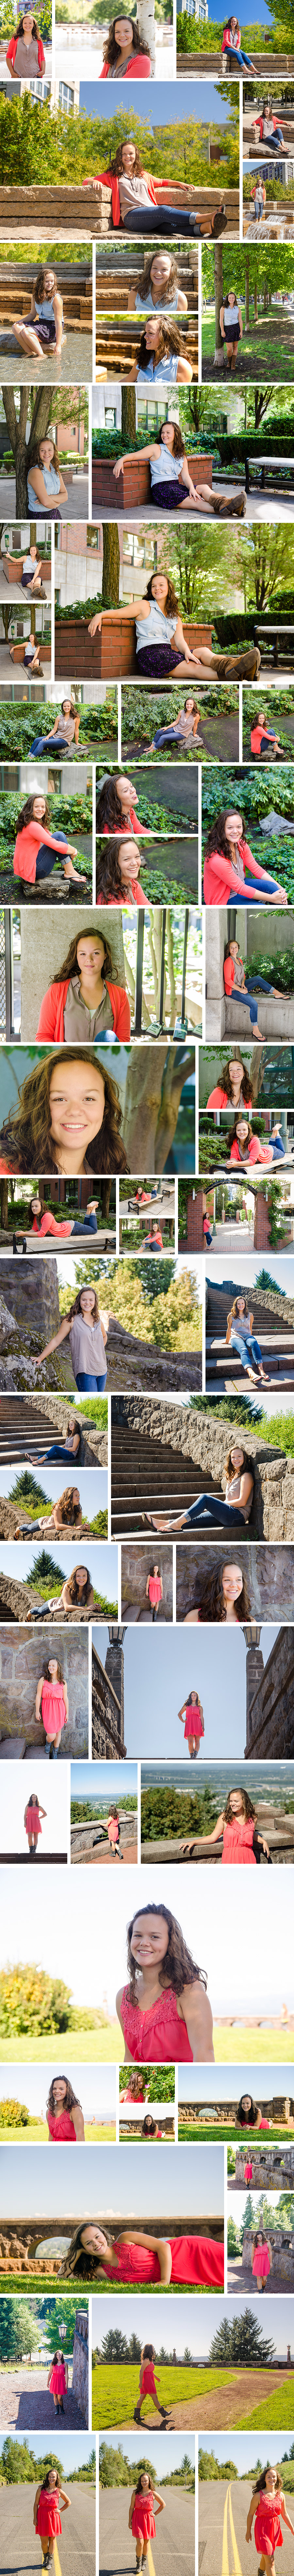 Lizzy Culbertson - Senior shoot collage of photos.